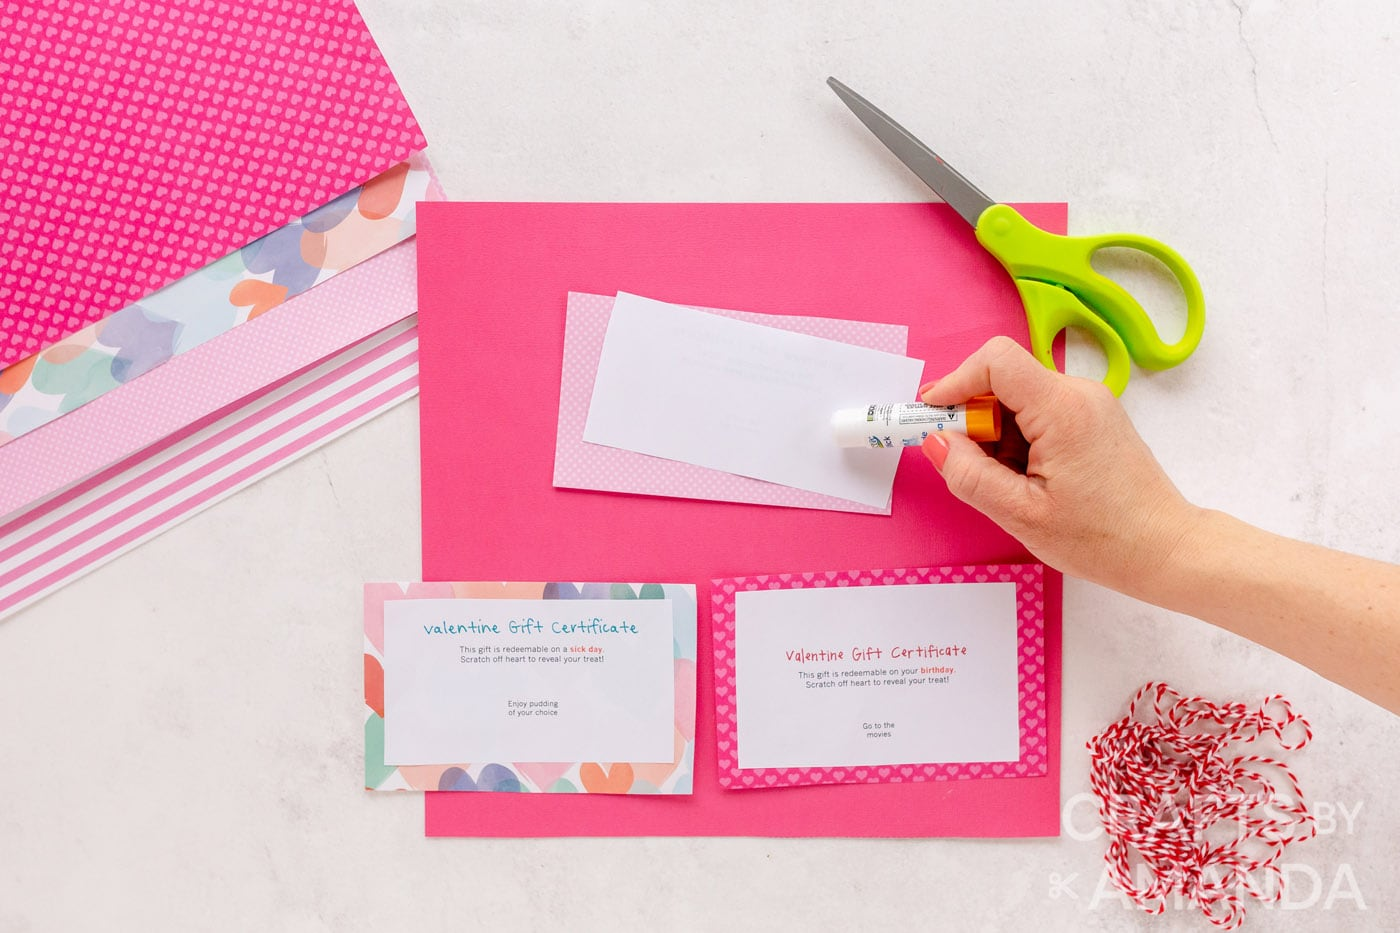 use a glue stick to adhere to the scrapbook paper